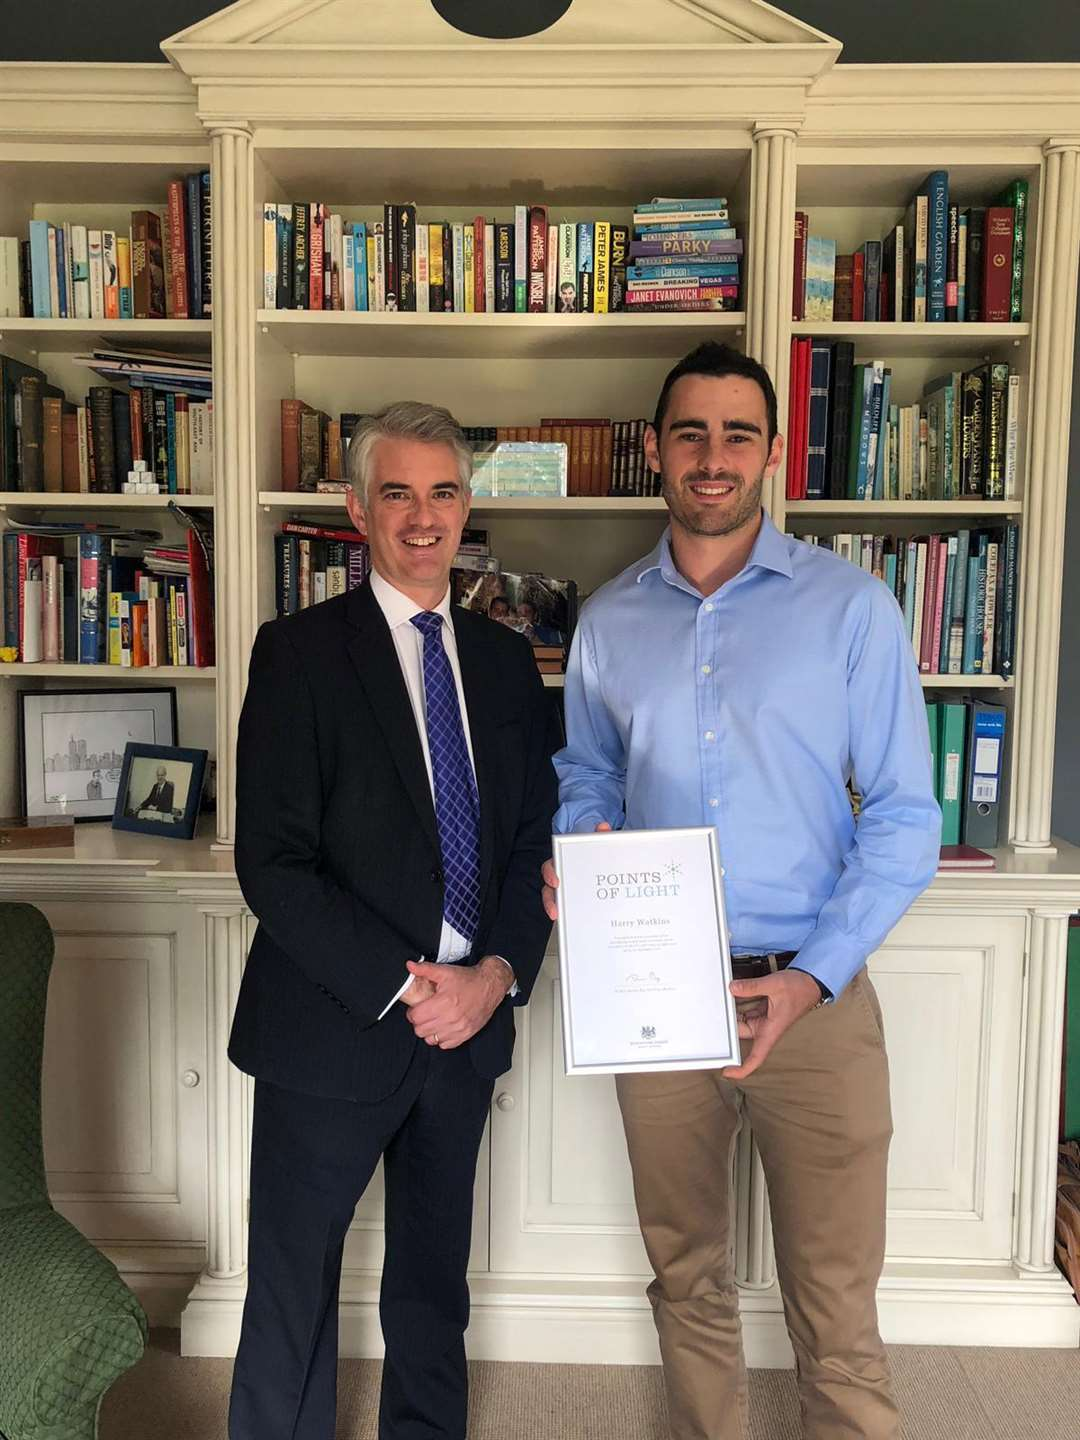 Higham resident Harry Watkins receives the Points of Light award for his work to champion mental health awareness. Pictured: Harry Watkins (right) with his local Member of Parliament, South Suffolk MP James Cartlidge. (4310130)